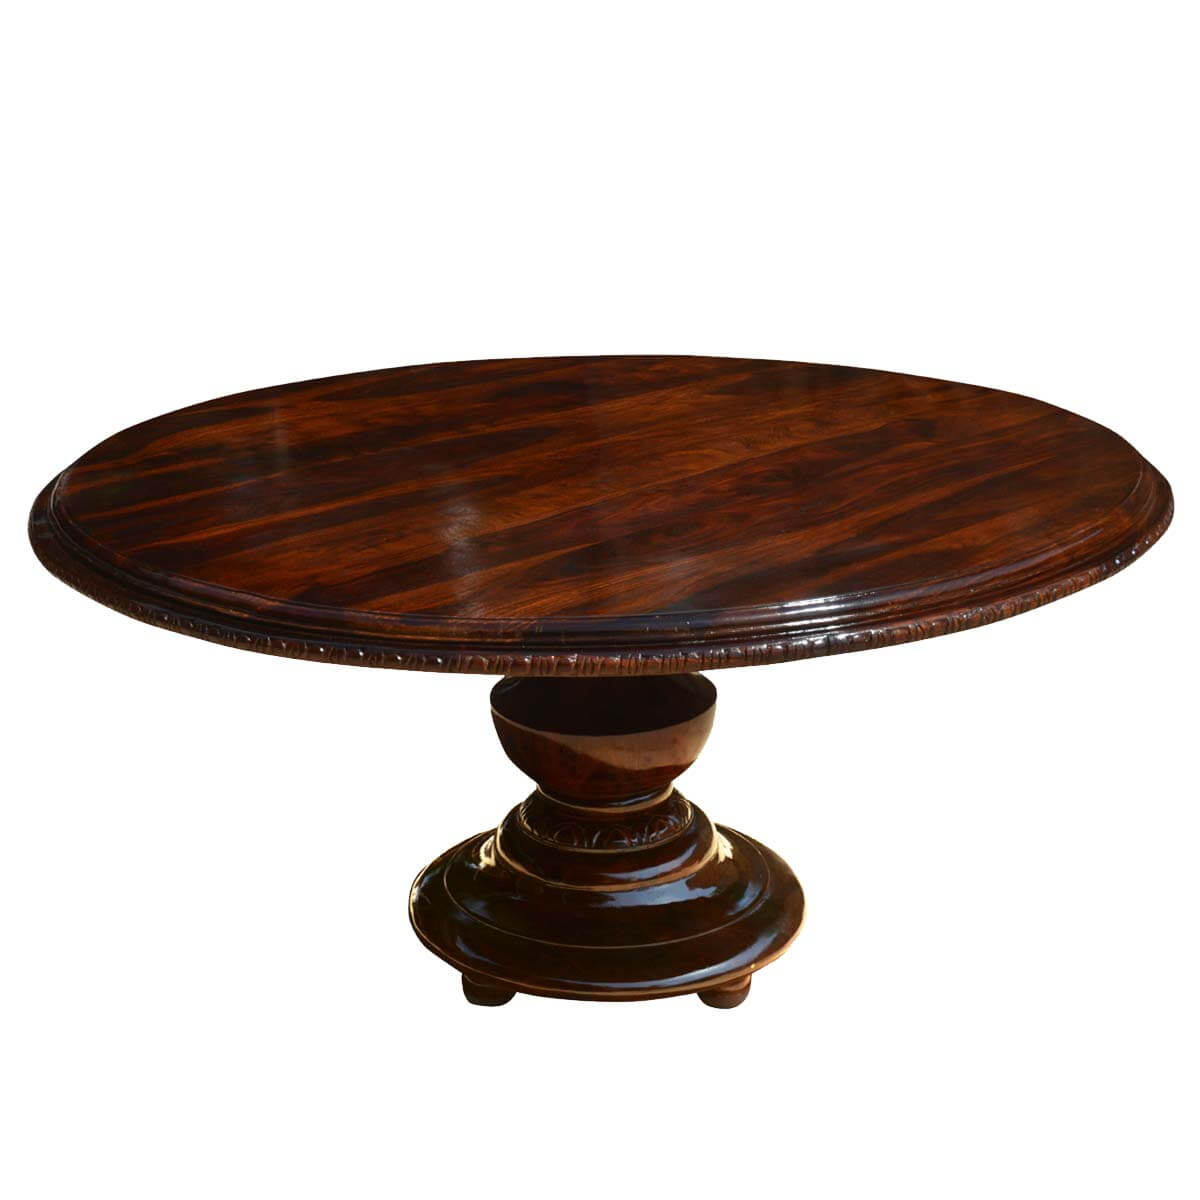 Rustic solid wood pedestal round dining table for Solid wood round tables dining